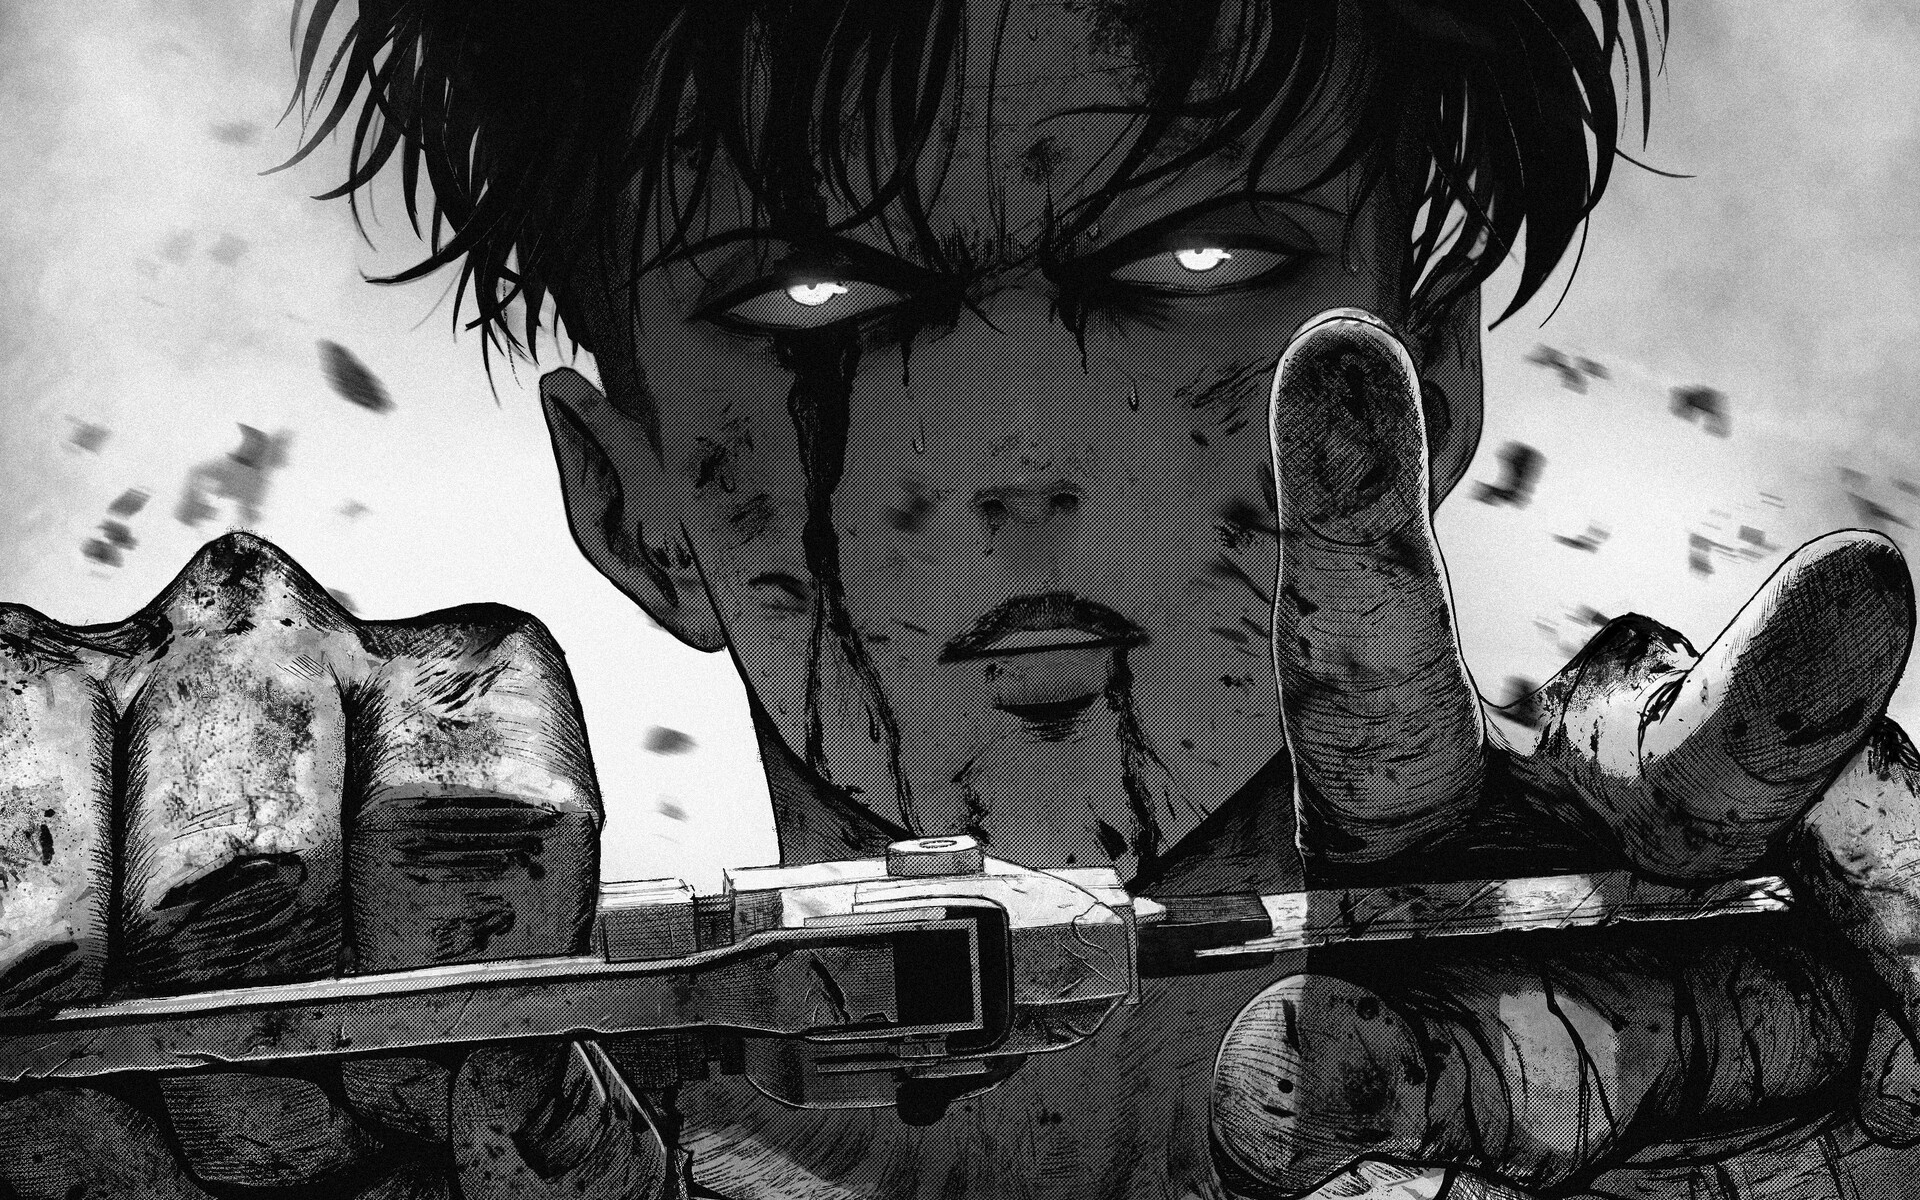 Wallpaper Of Attack On Titan Levi Ackerman Shingeki No Kyojin